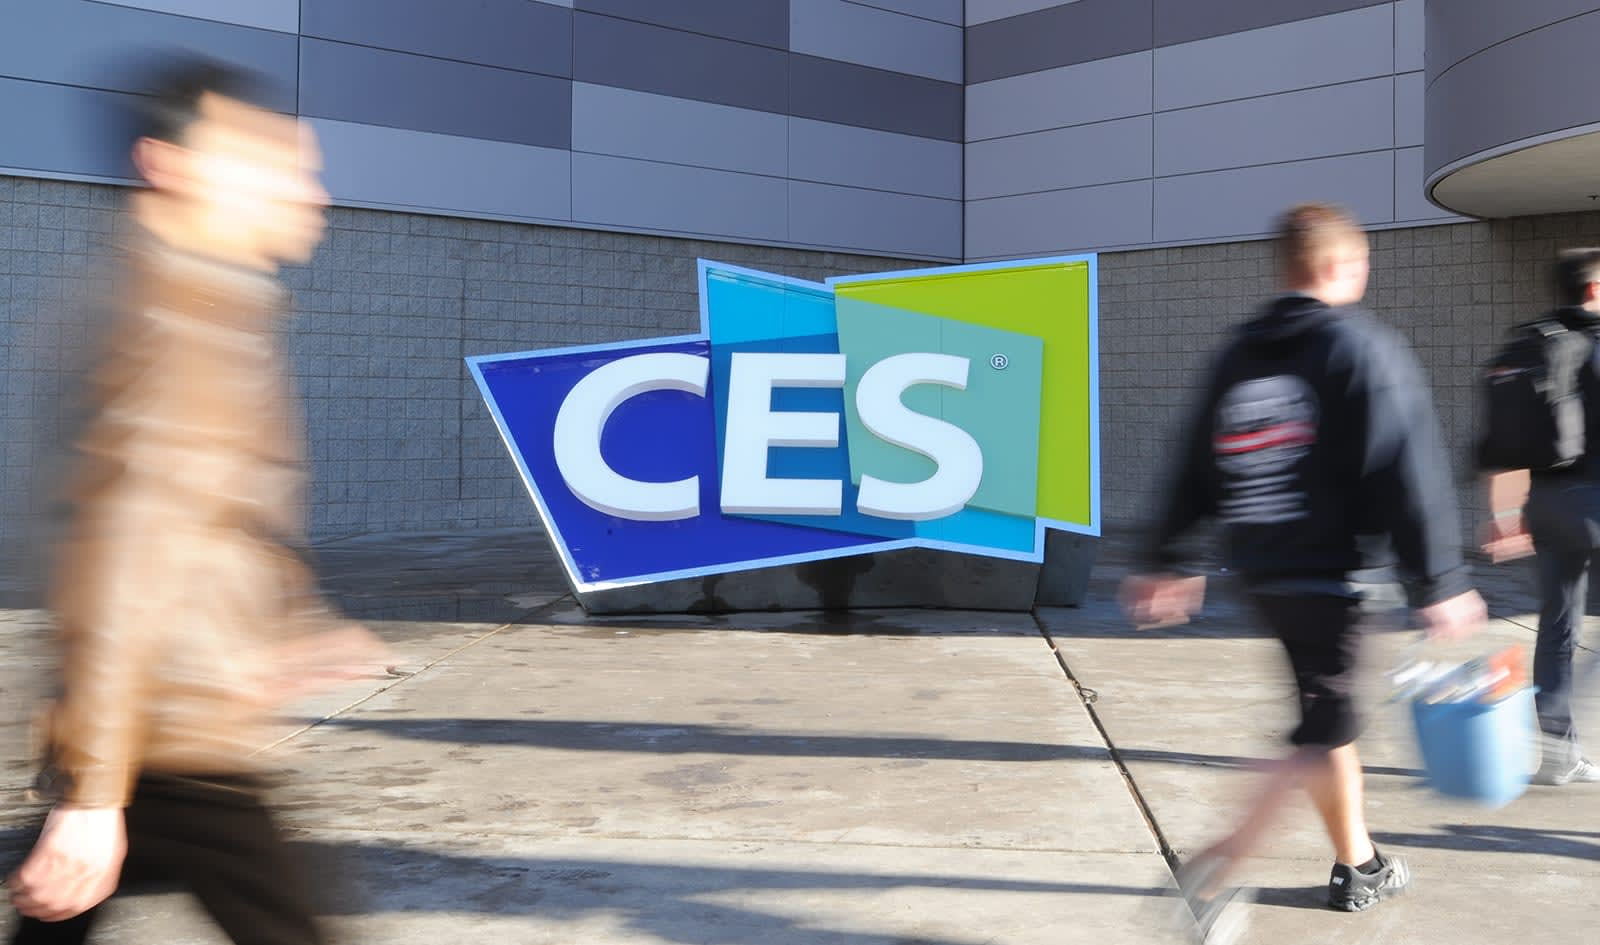 CES 2018: What to expect